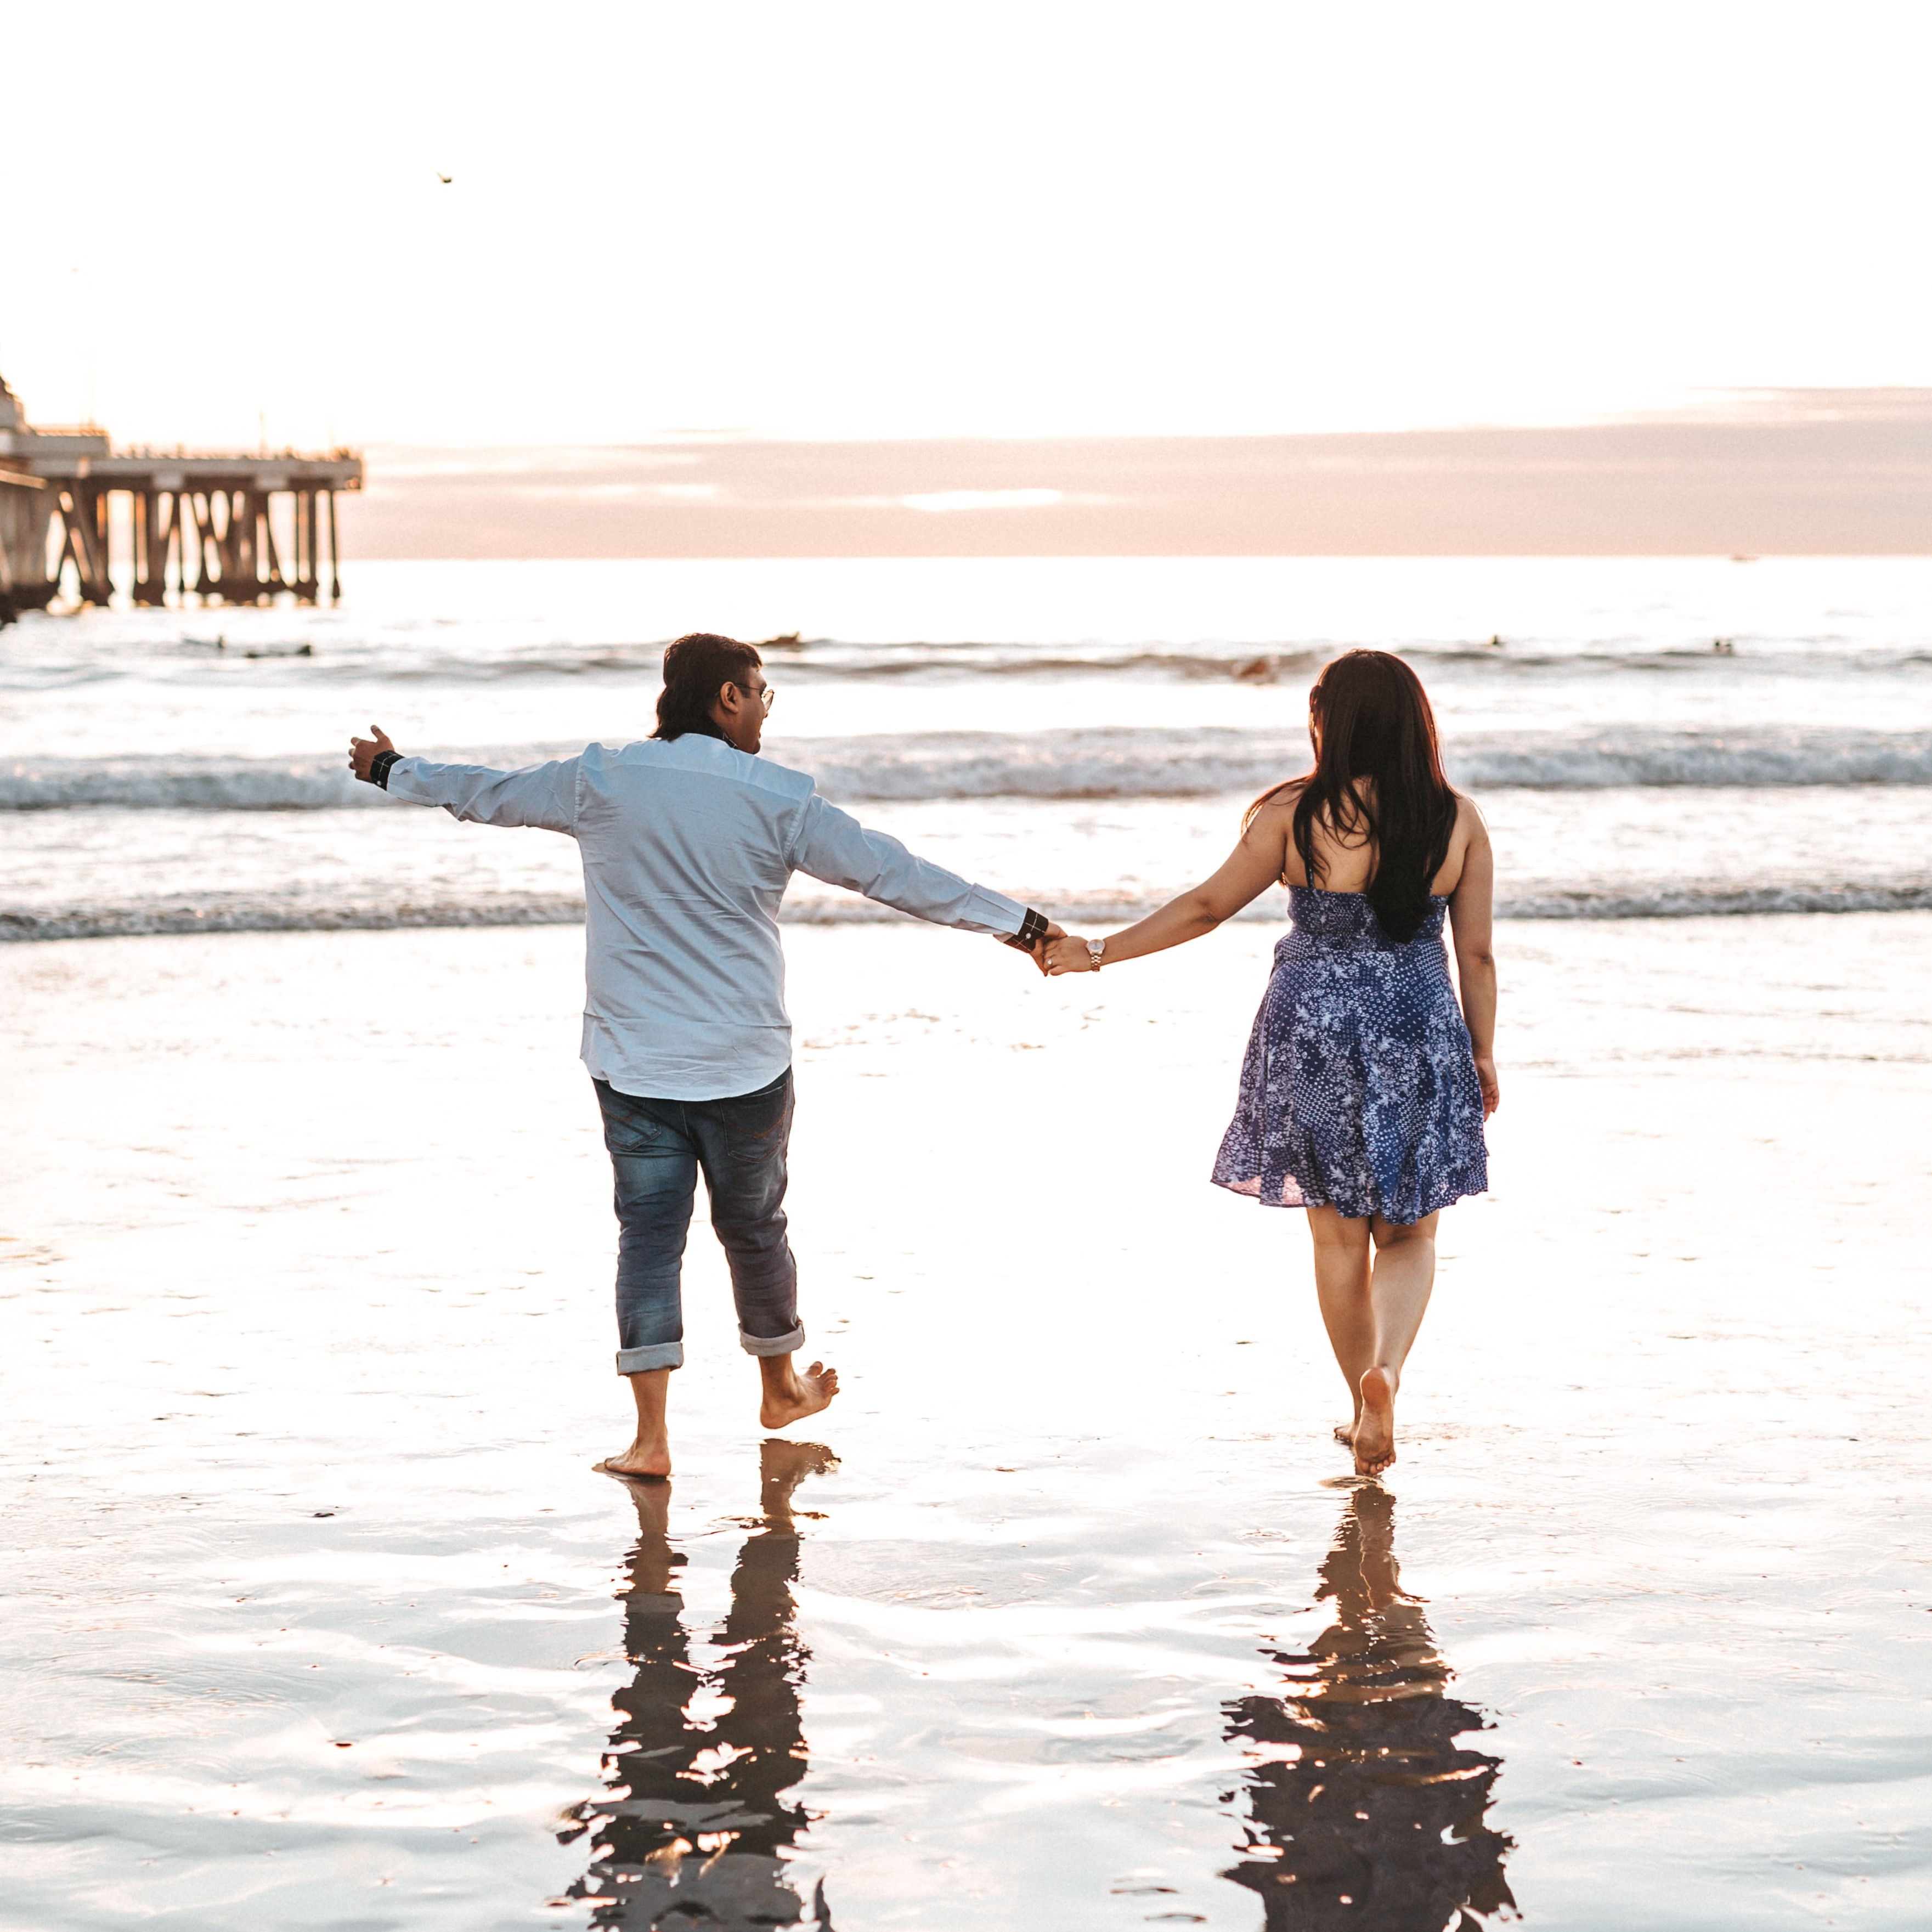 A man and a woman walk along a beach, holding hands. The man has one arm outstretched, as if gesturing at something.